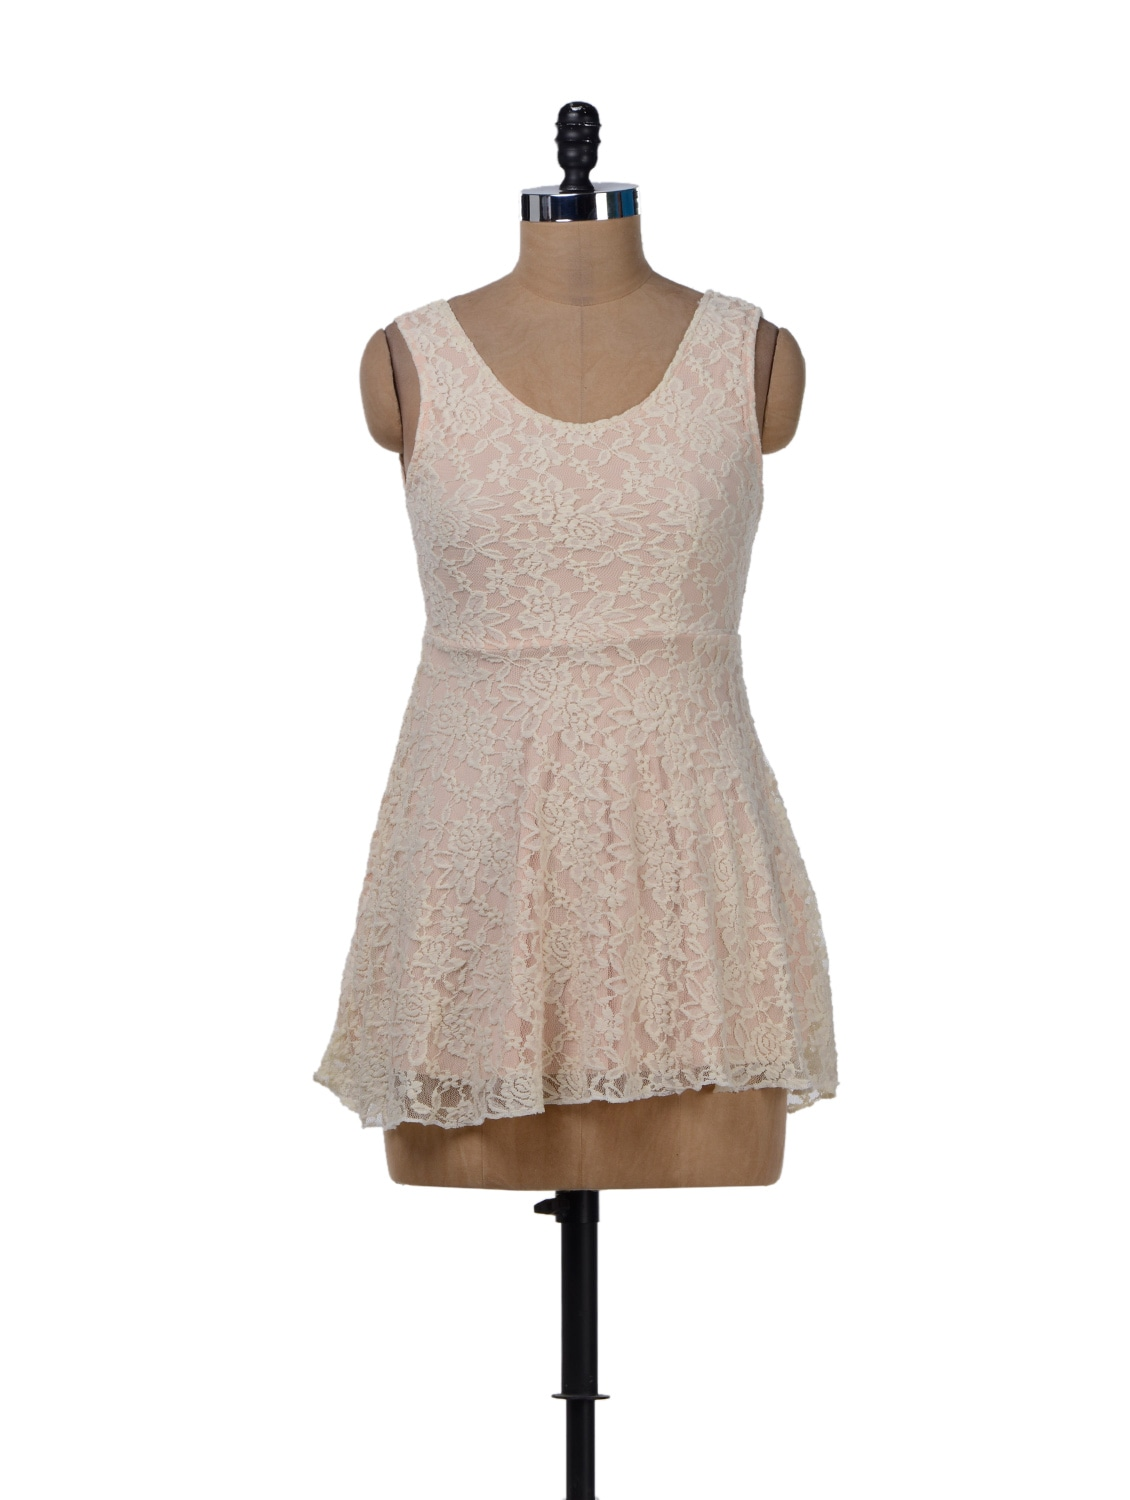 Off White Lace Dress With A Cut Out Back - Sanchey